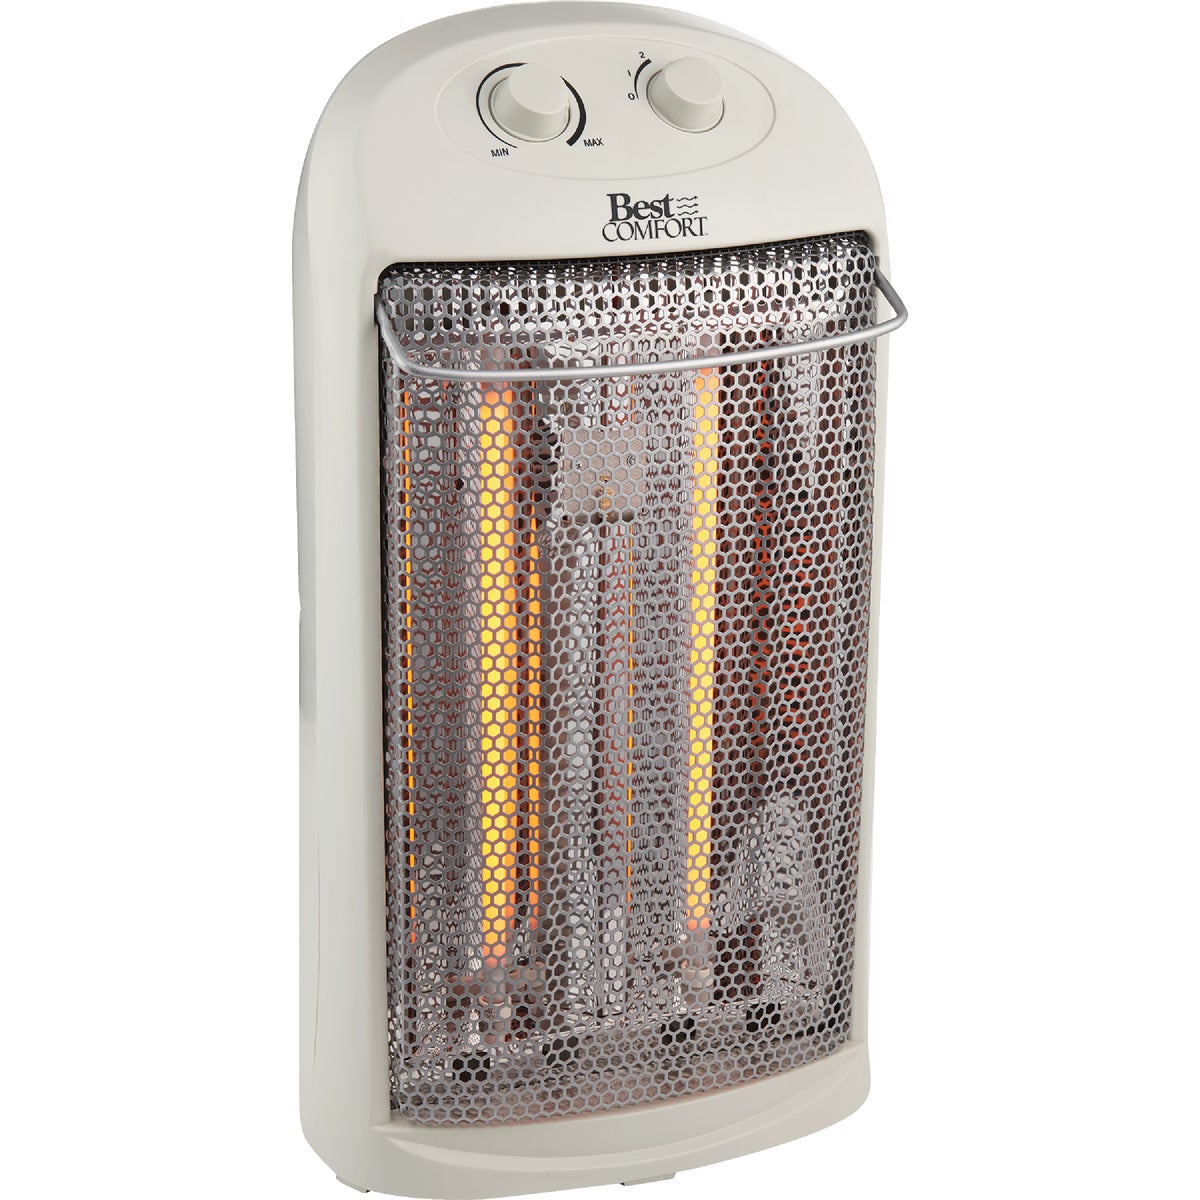 TOWER QUARTZ HEATER